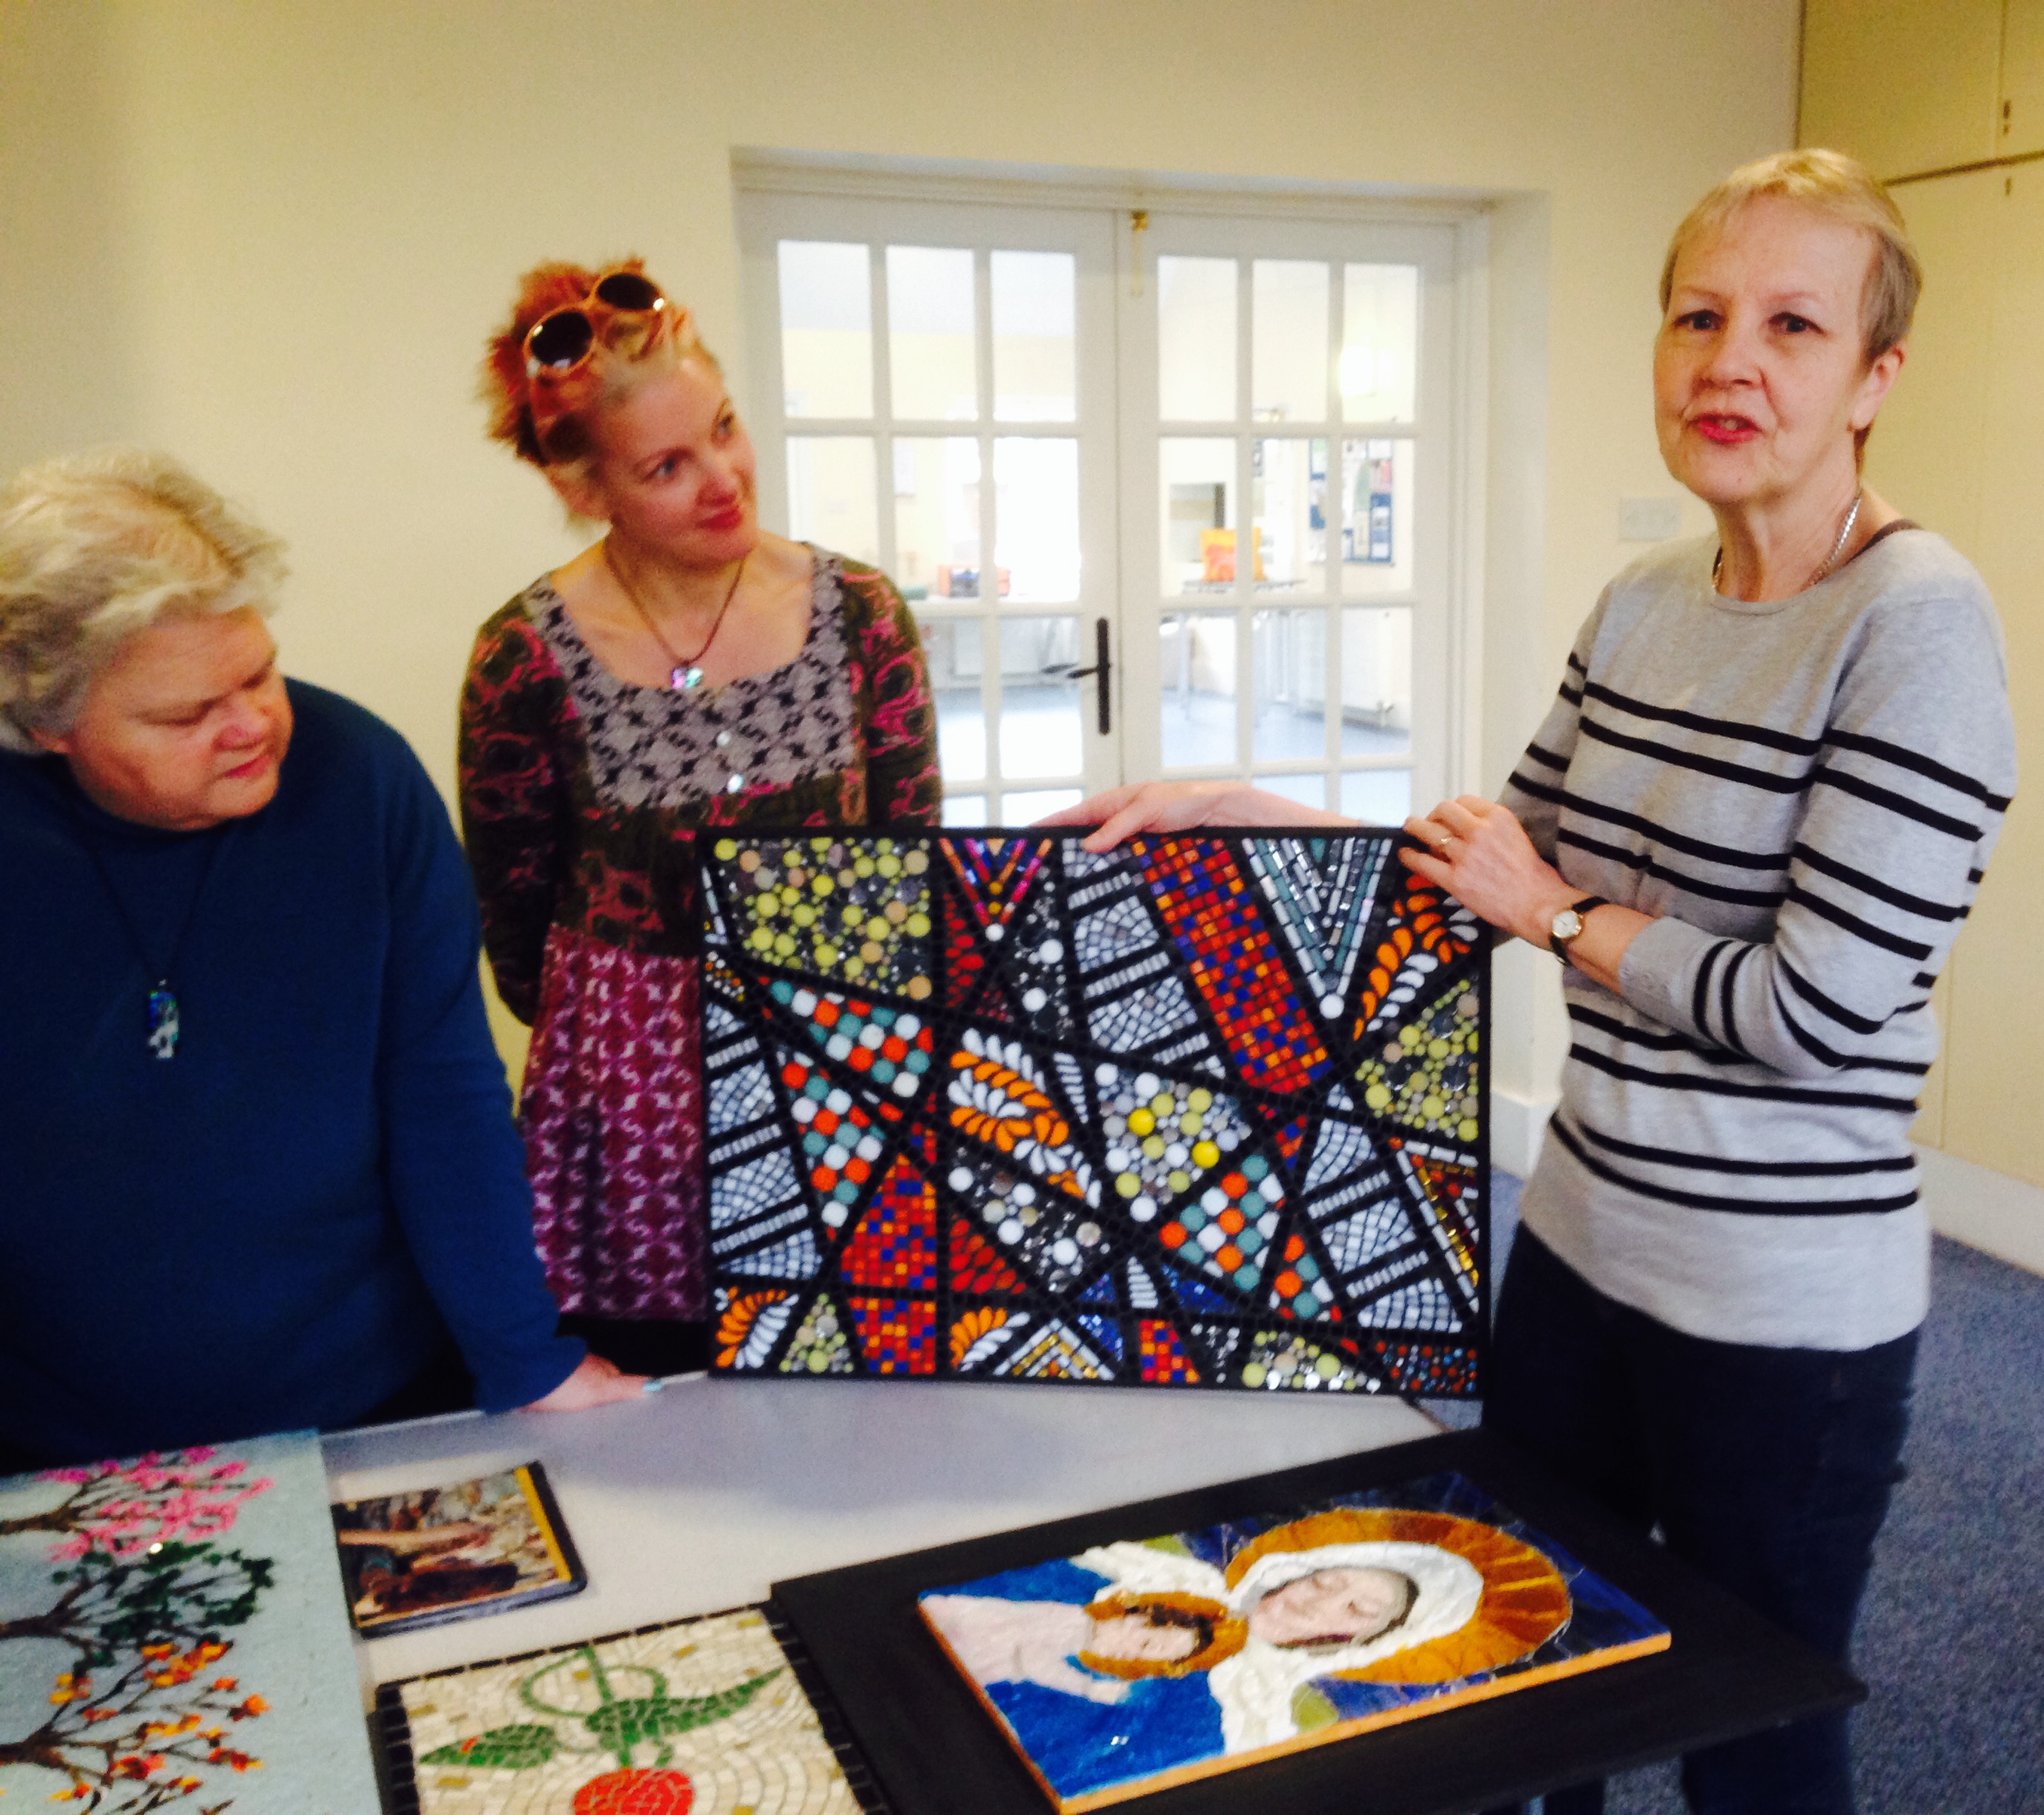 Mosaics, Concetta Perot, London, learn mosaics, mosaic classes, workshops, mindfulness